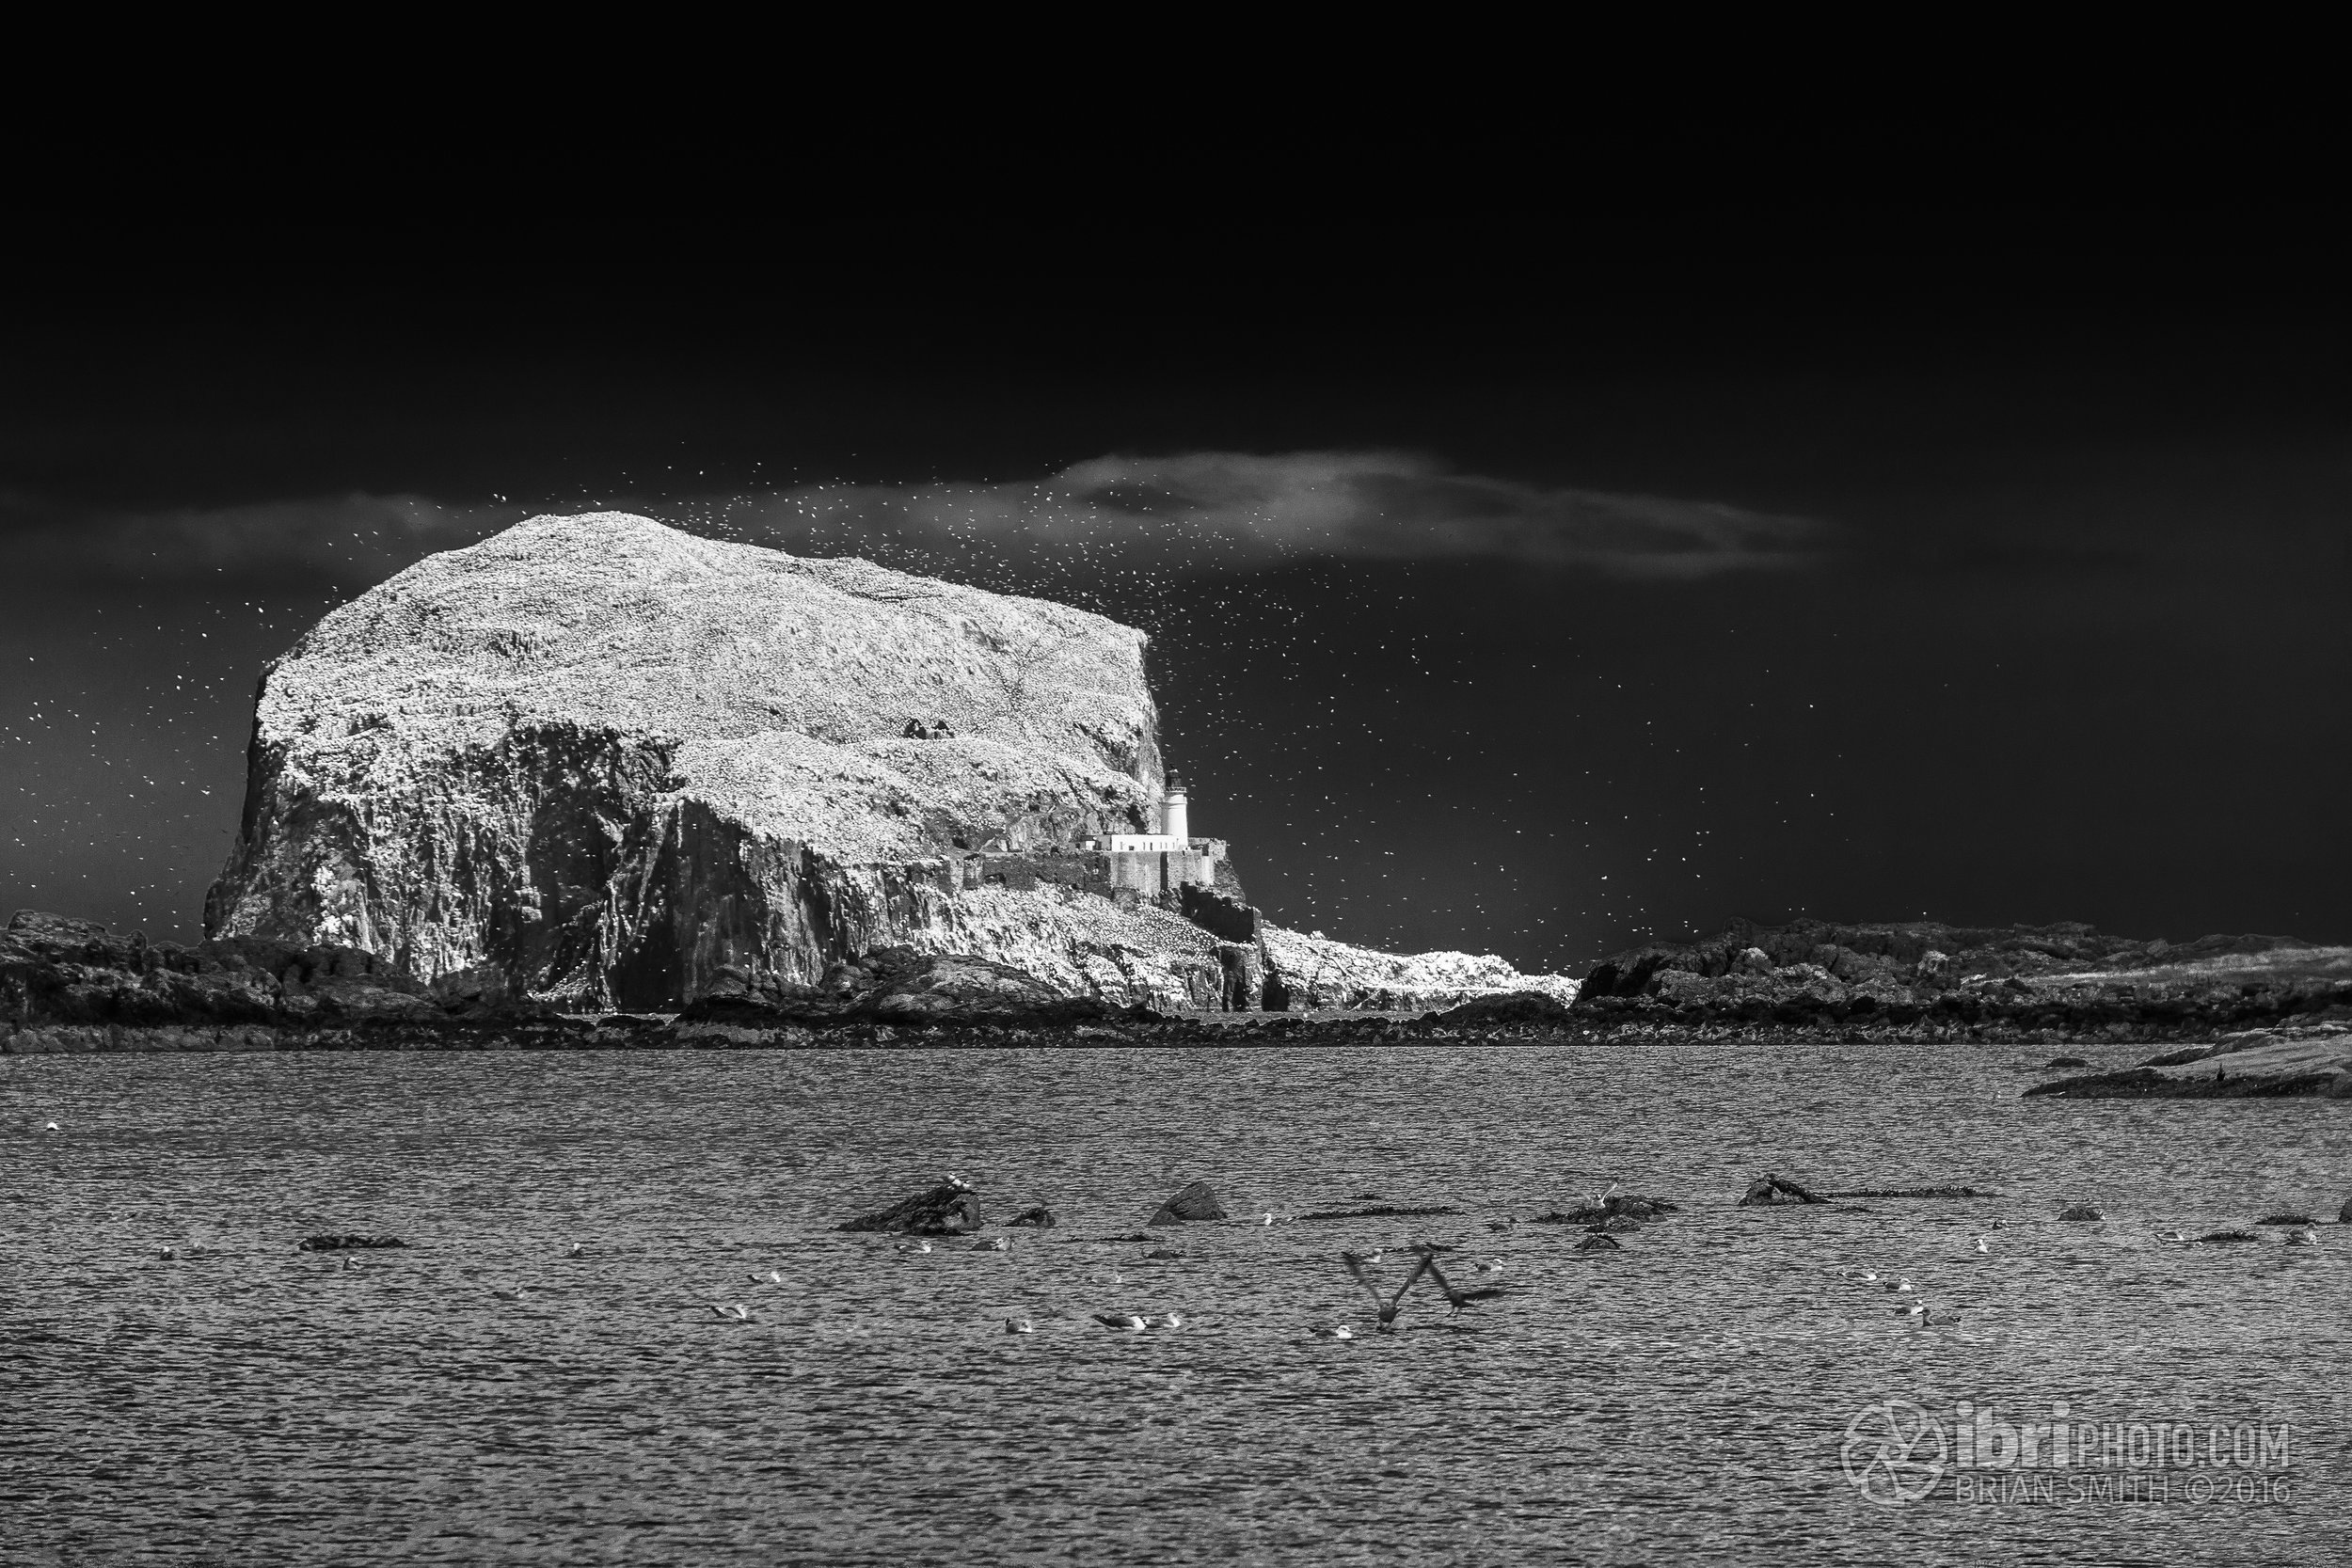 The rock looks like it's being pelted with giant snowflakes here. Used a polariser to enhance the effect and to turn the blue sky dark during conversion to black and white.